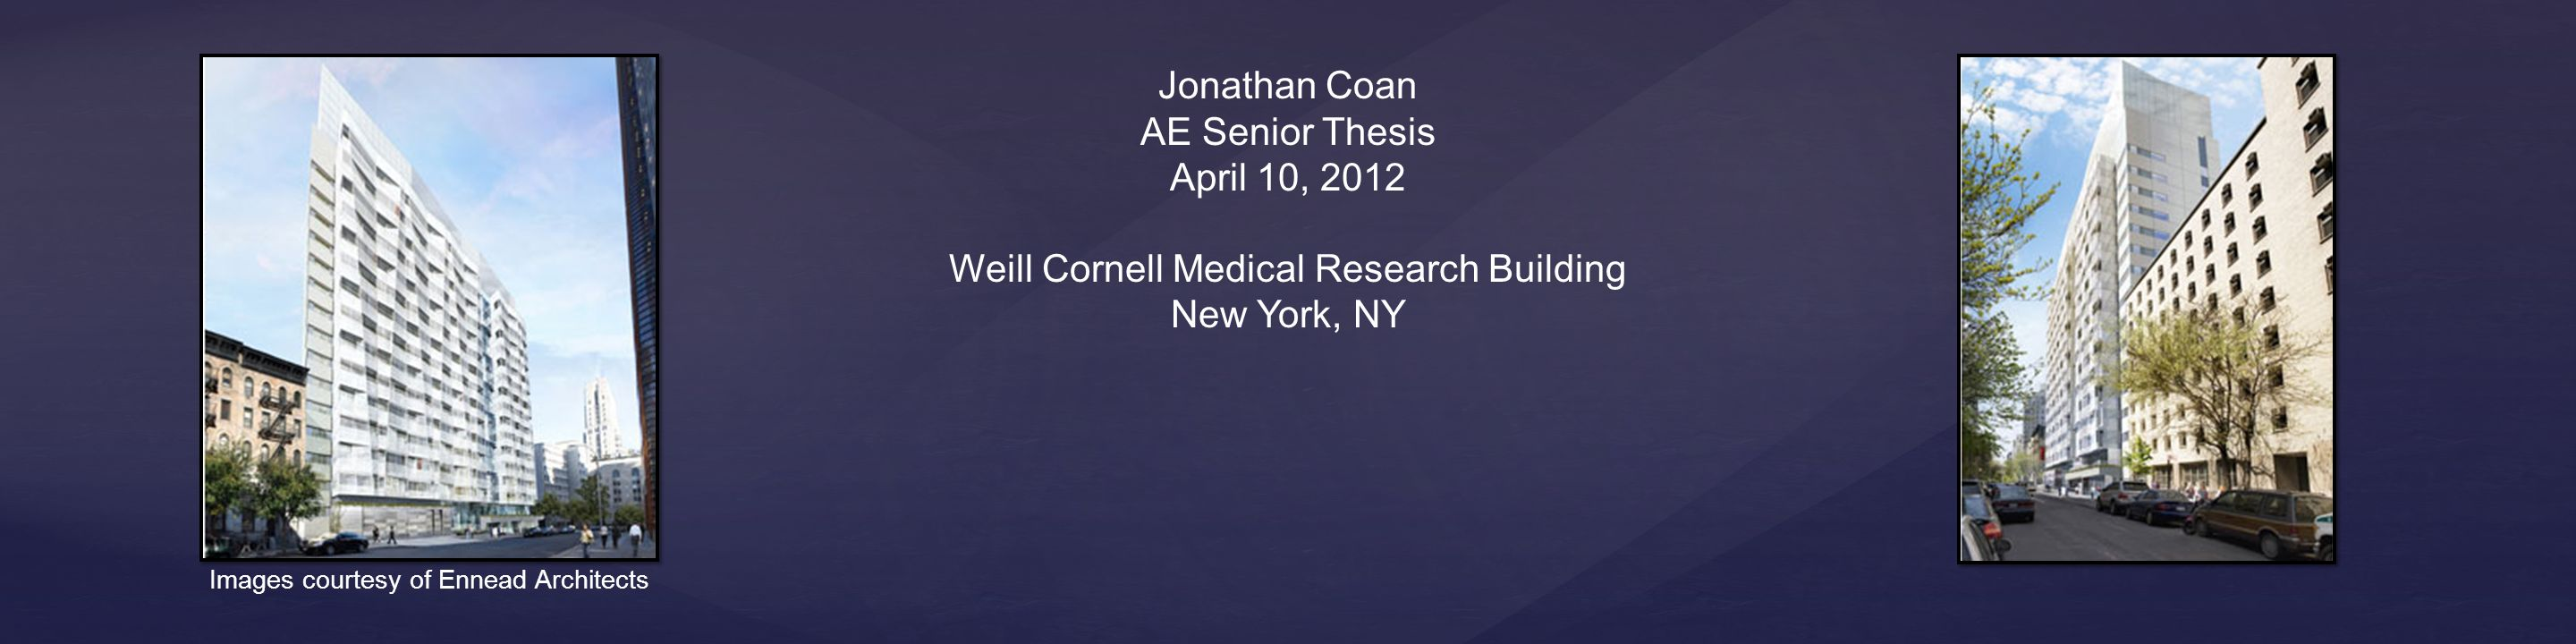 cornell engineering honors thesis Courses skip to main content cee cornell more options search cee cornell engineering school of civil and environmental engineering menu senior honors thesis.